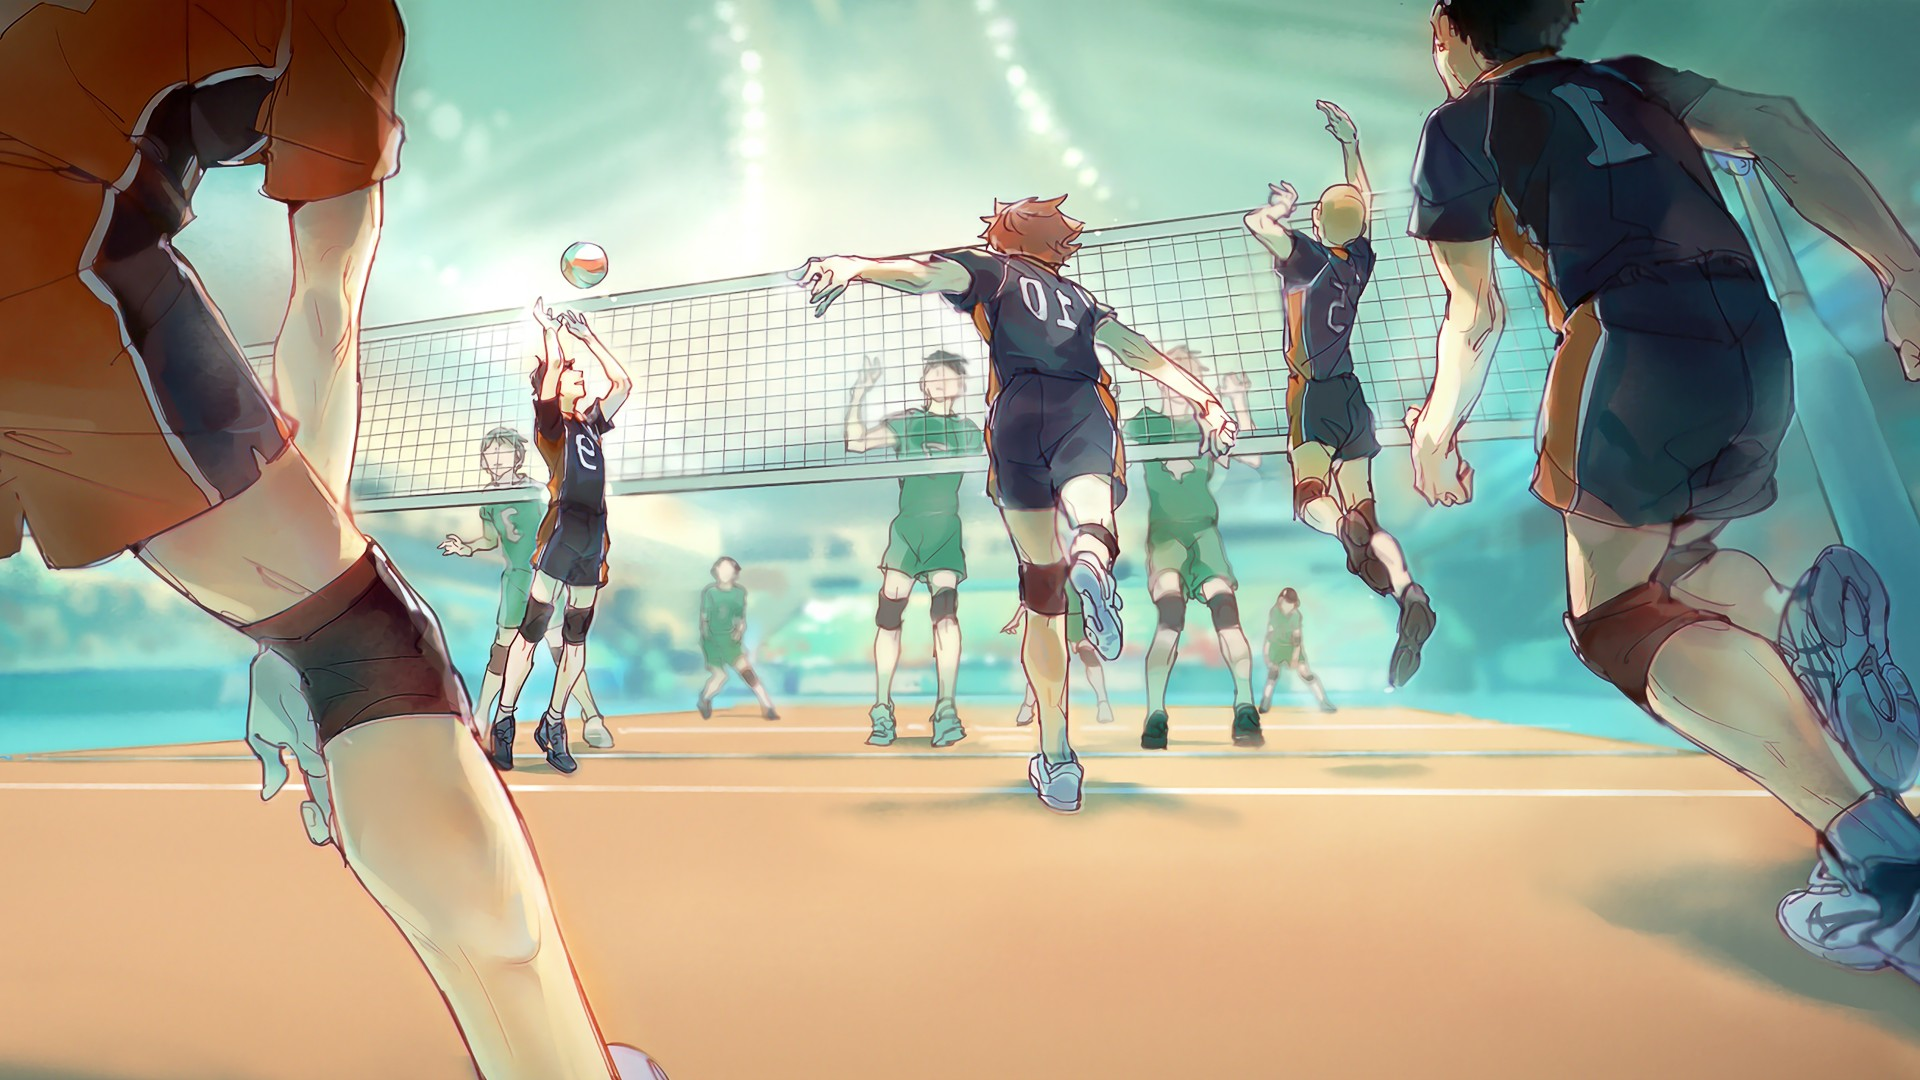 Volleyball Wallpaper Iphone Haikyuu Wallpaper 183 ① Download Free Cool High Resolution